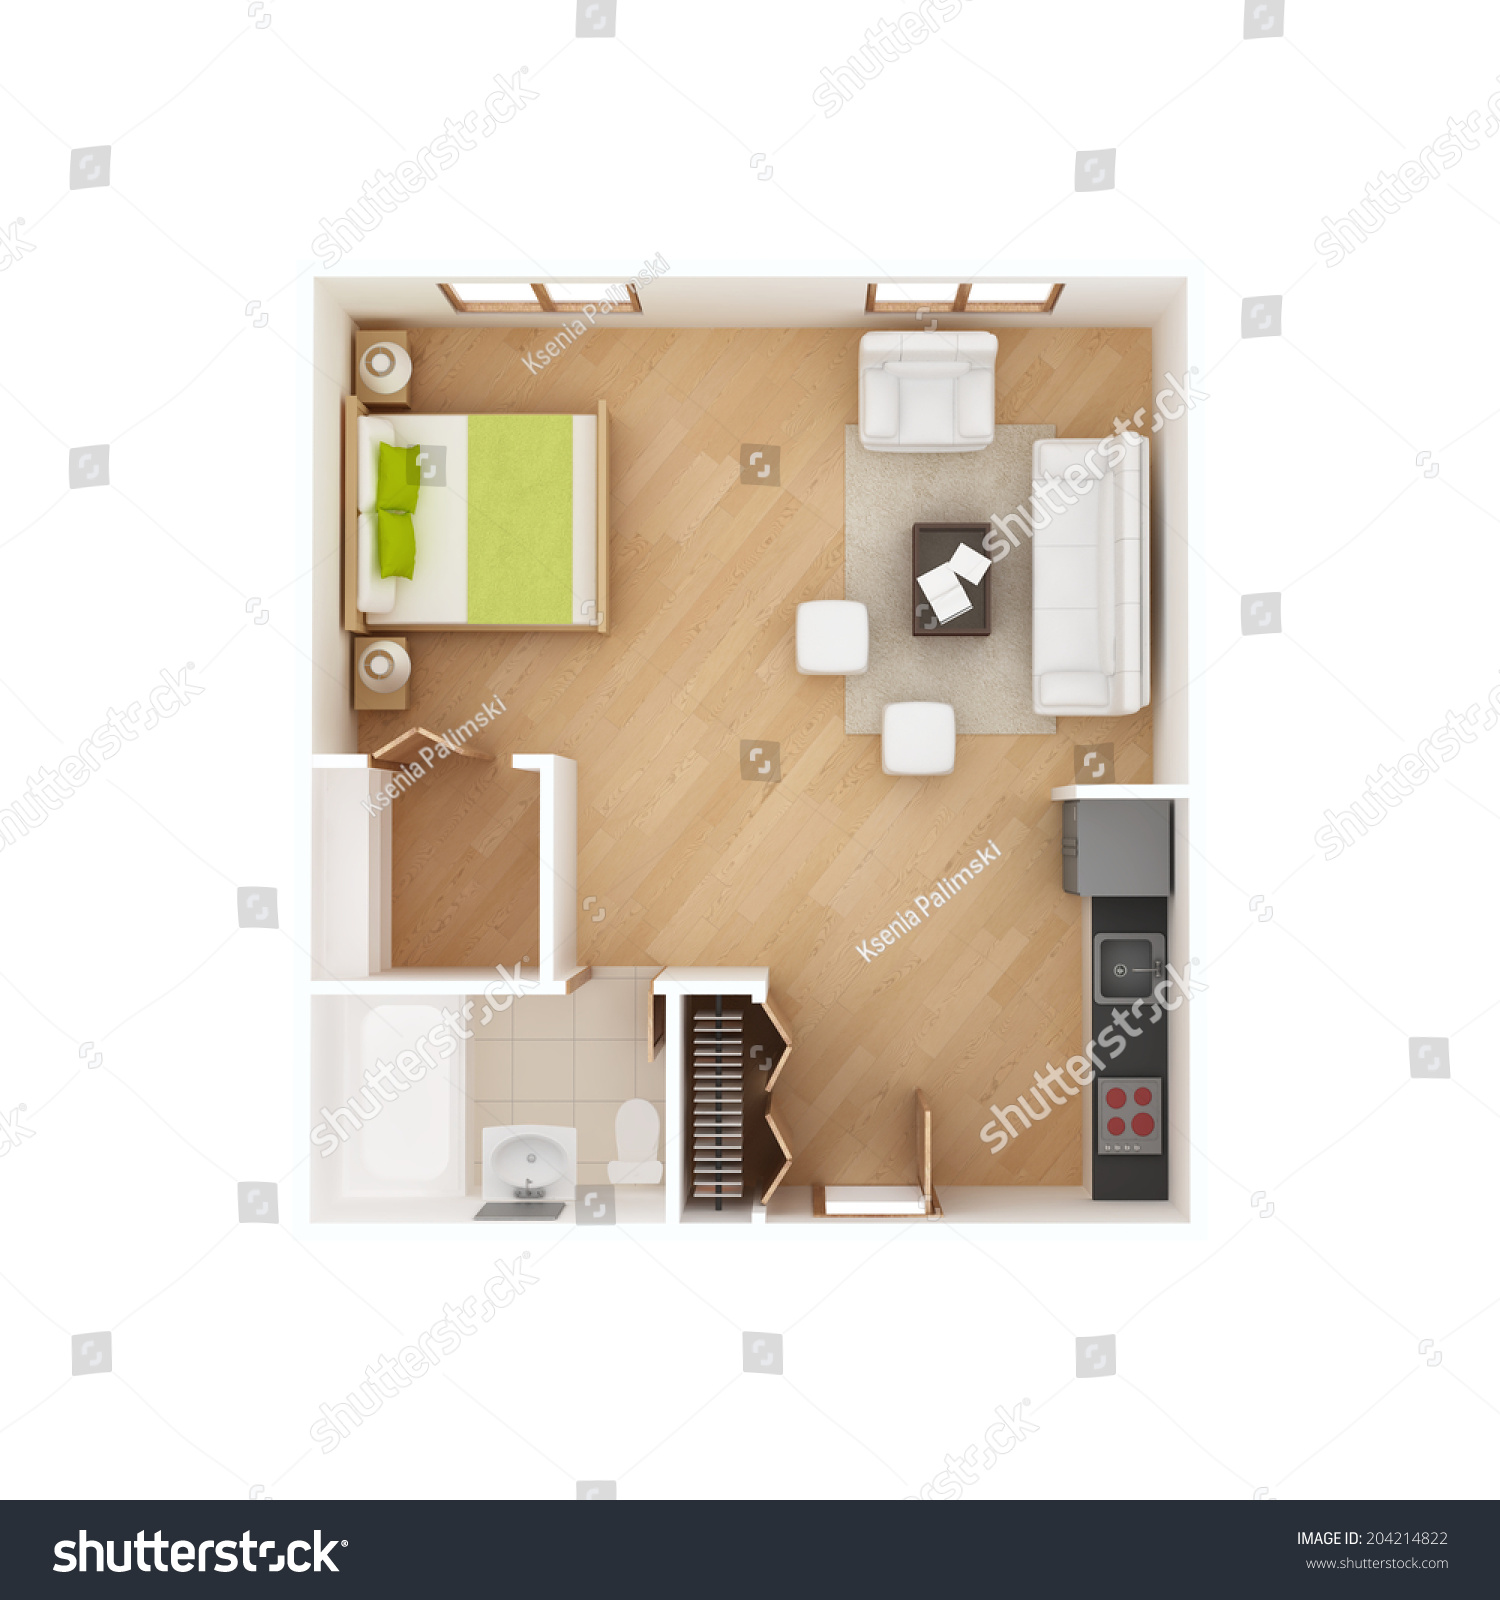 Studio apartment floor plan top view stock illustration for Photography studio floor plans